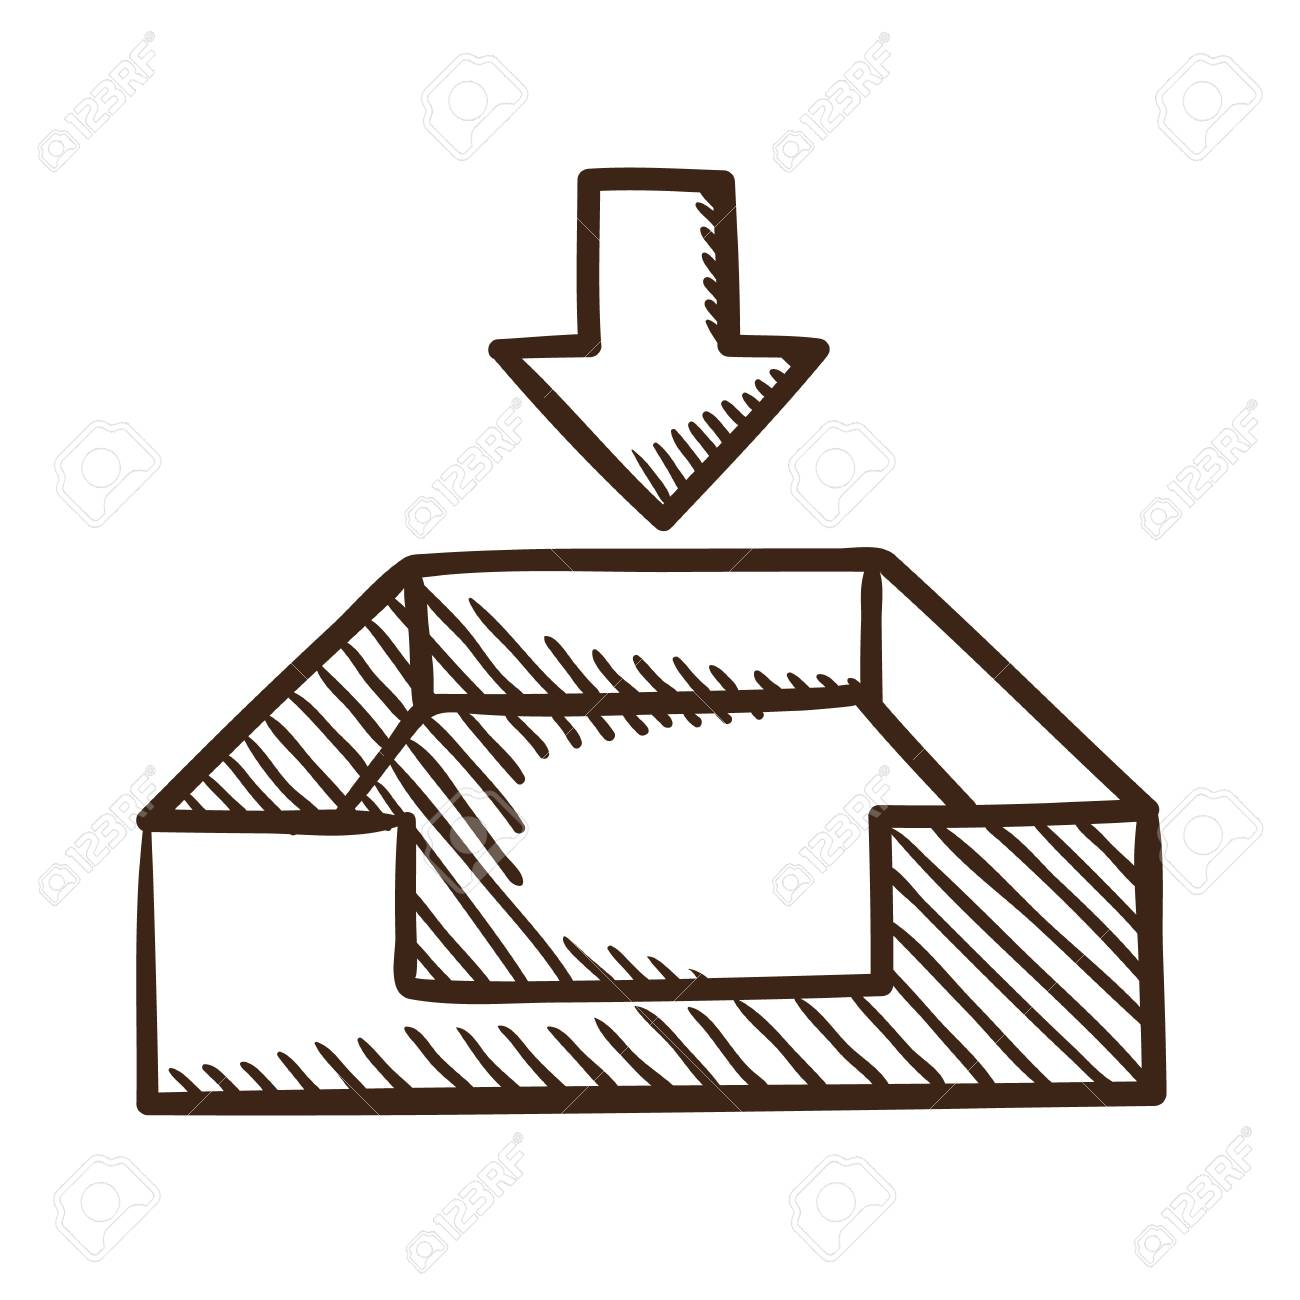 Isolated sketch icon pictogram. Stock Vector - 26532436